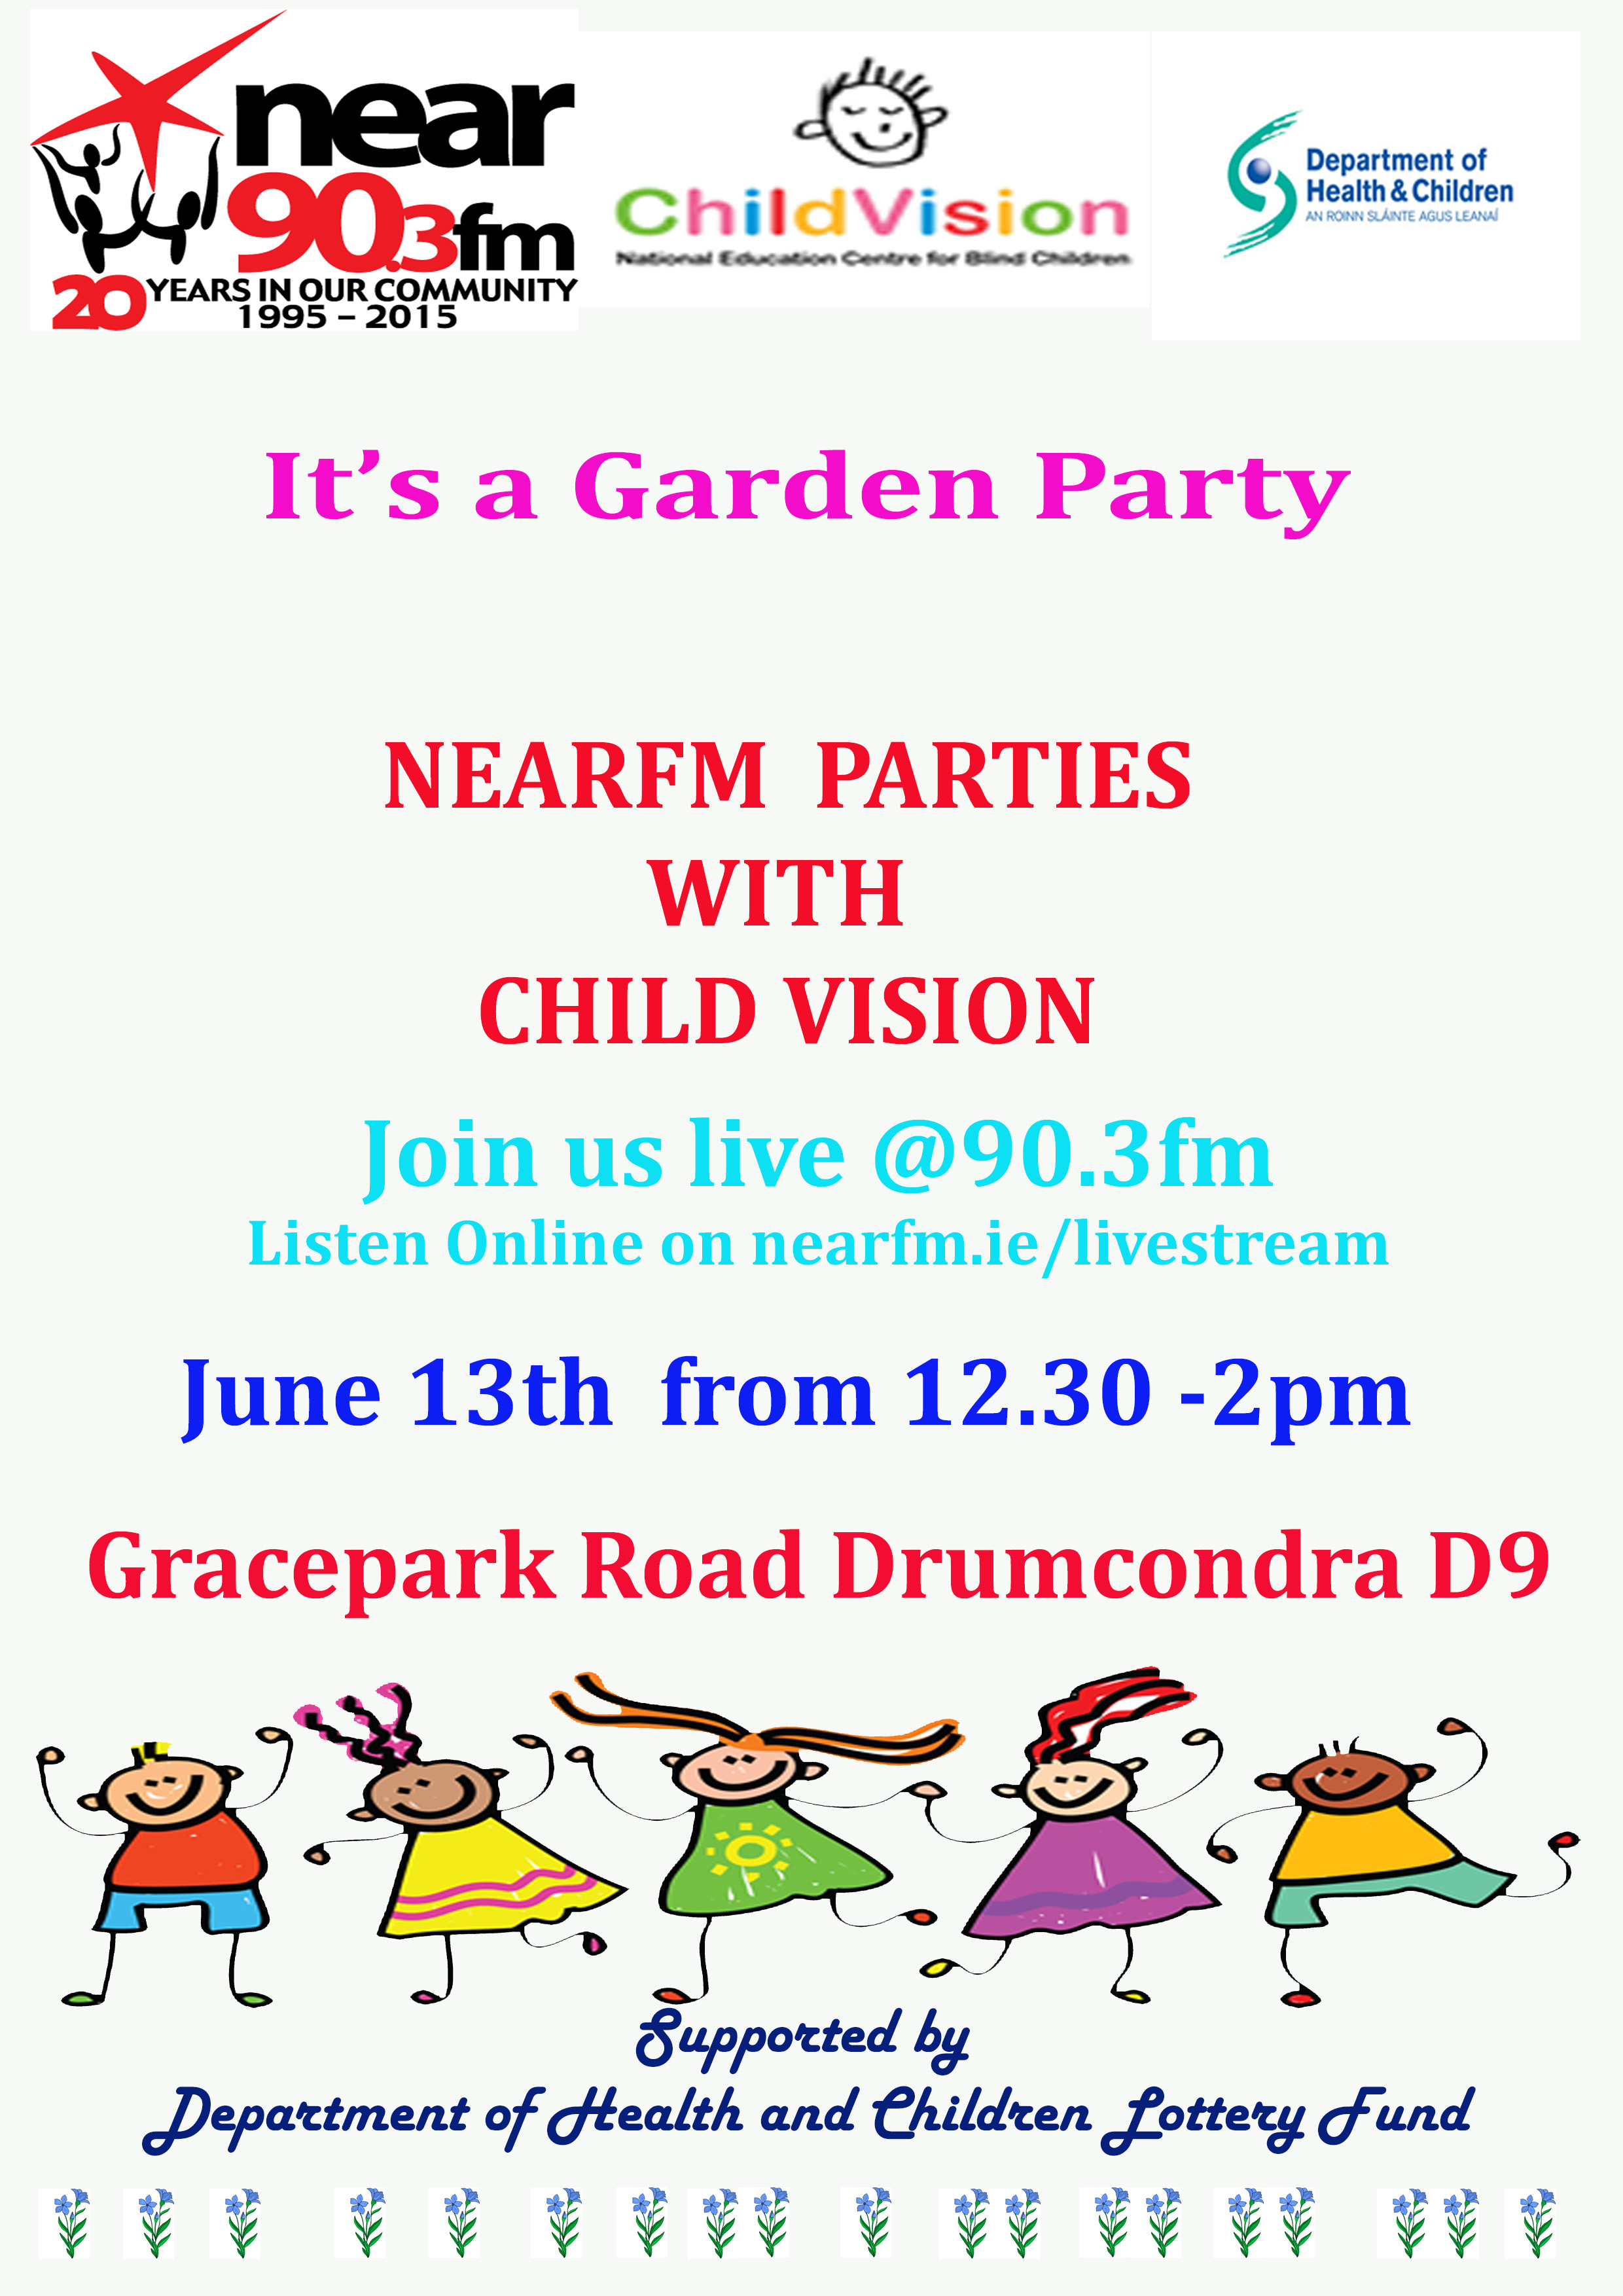 Visit Nearfm at Child Vision Garden Party Saturday  June 13th